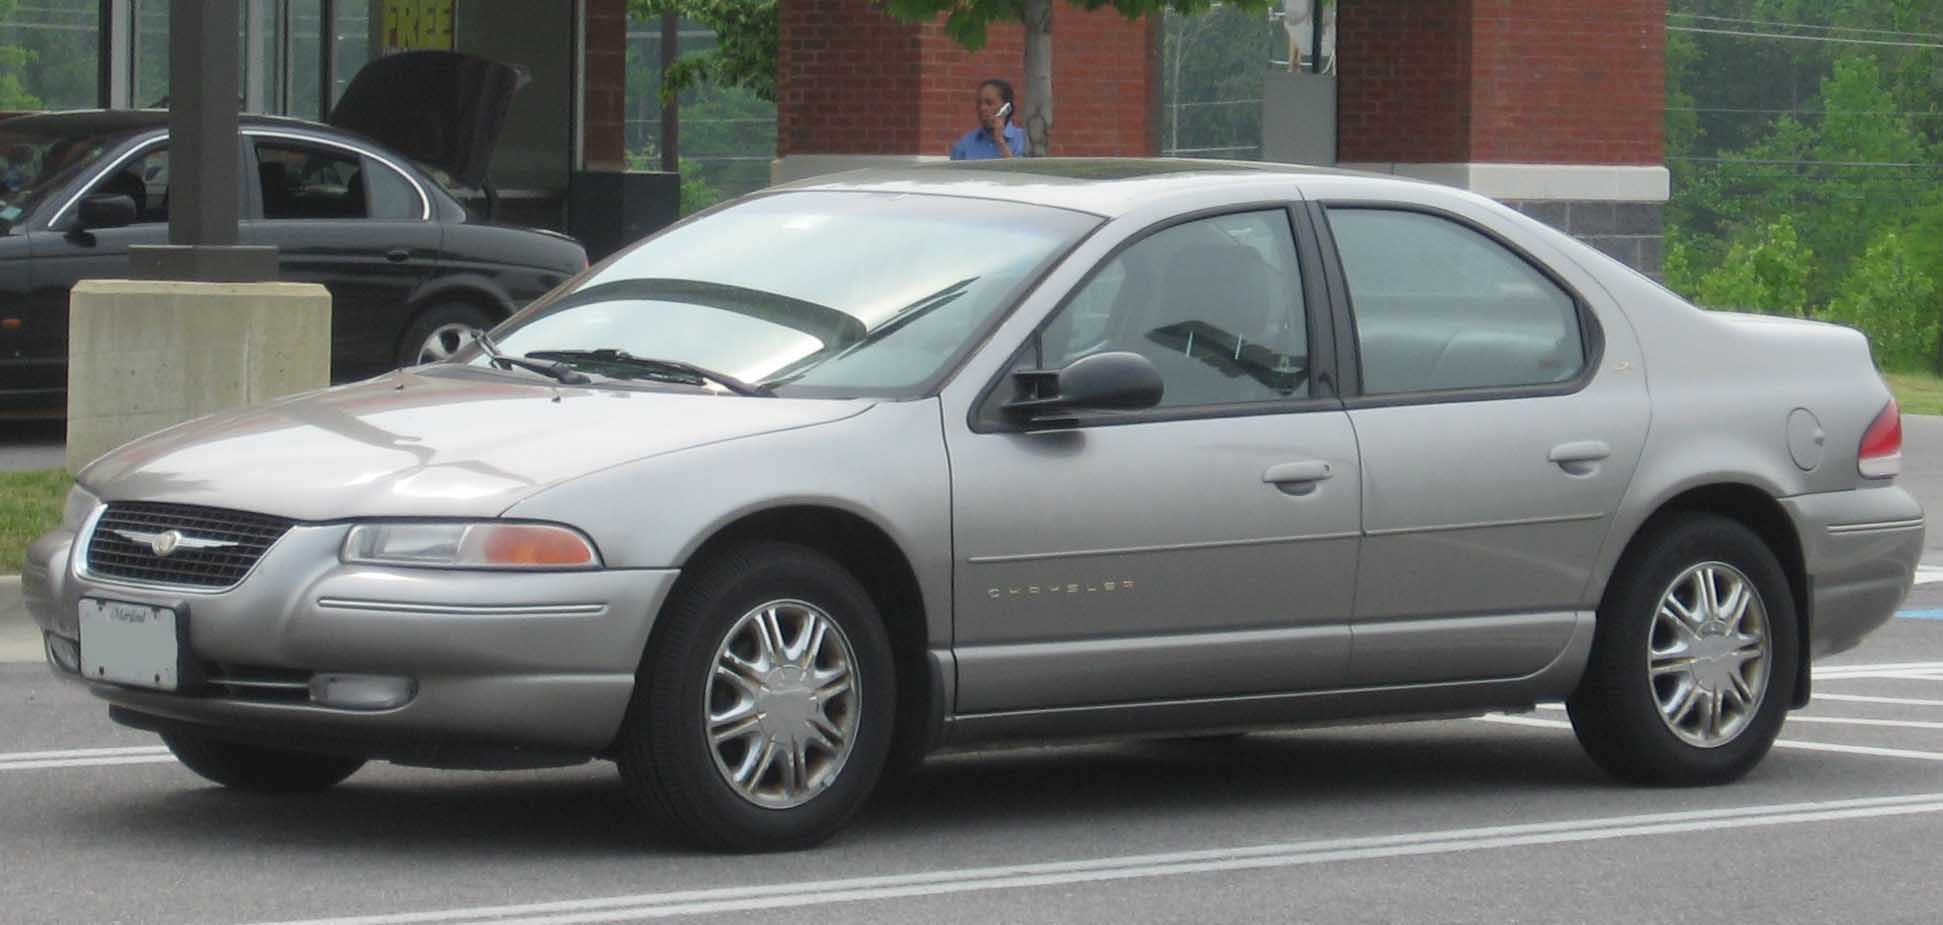 Chrysler Cirrus #1